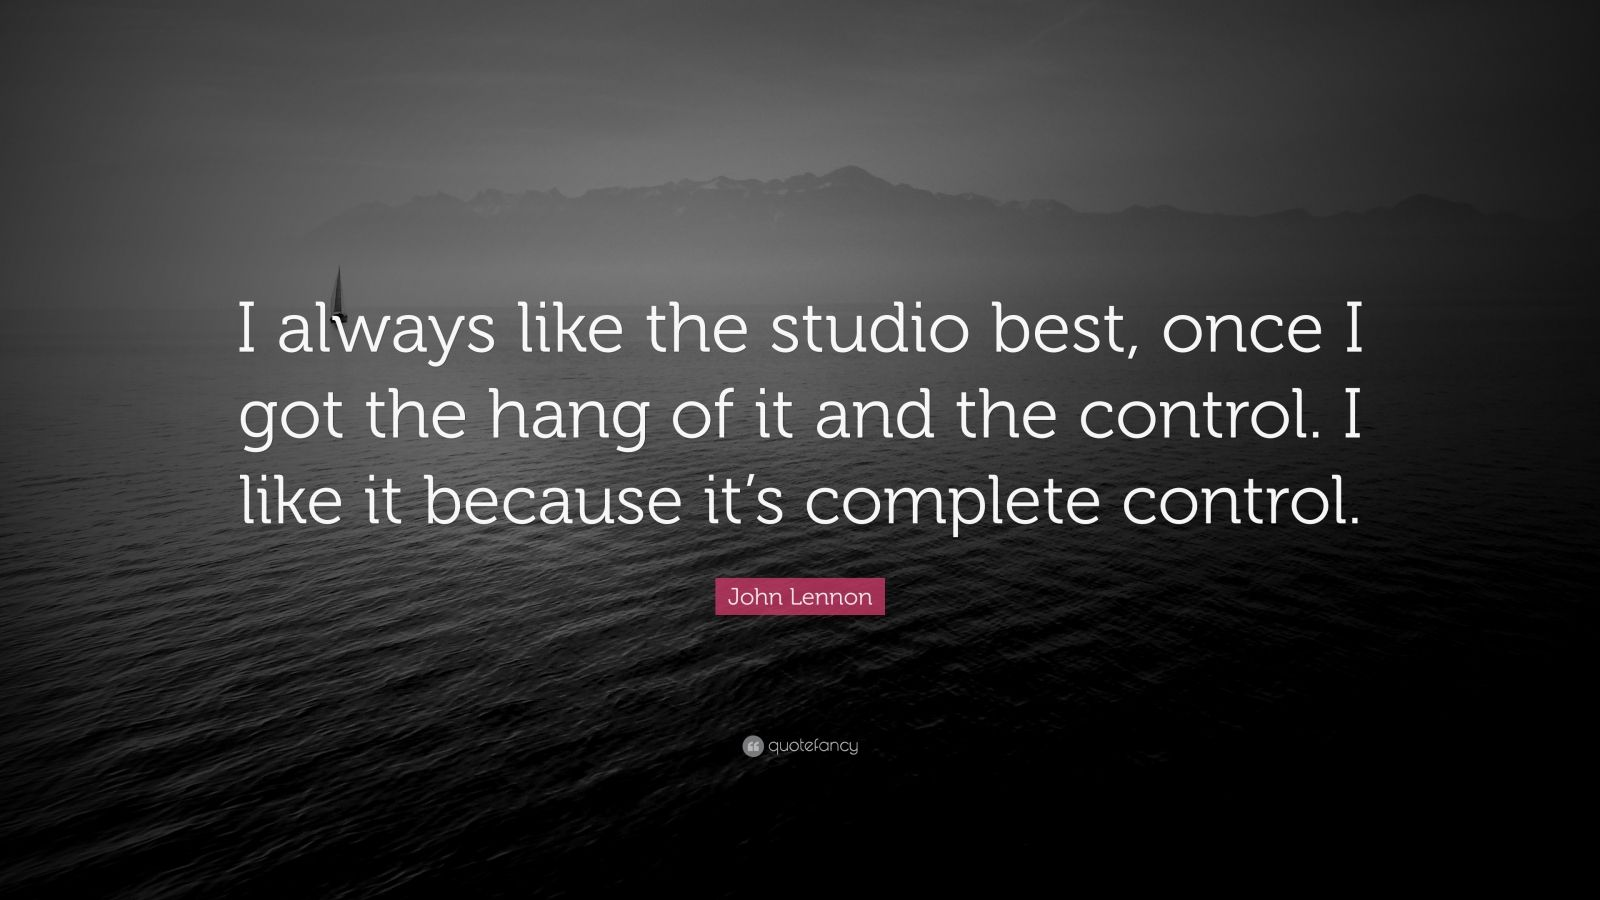 """John Lennon Quote: """"I always like the studio best, once I got the hang of it and the control. I like it because it's complete control."""""""